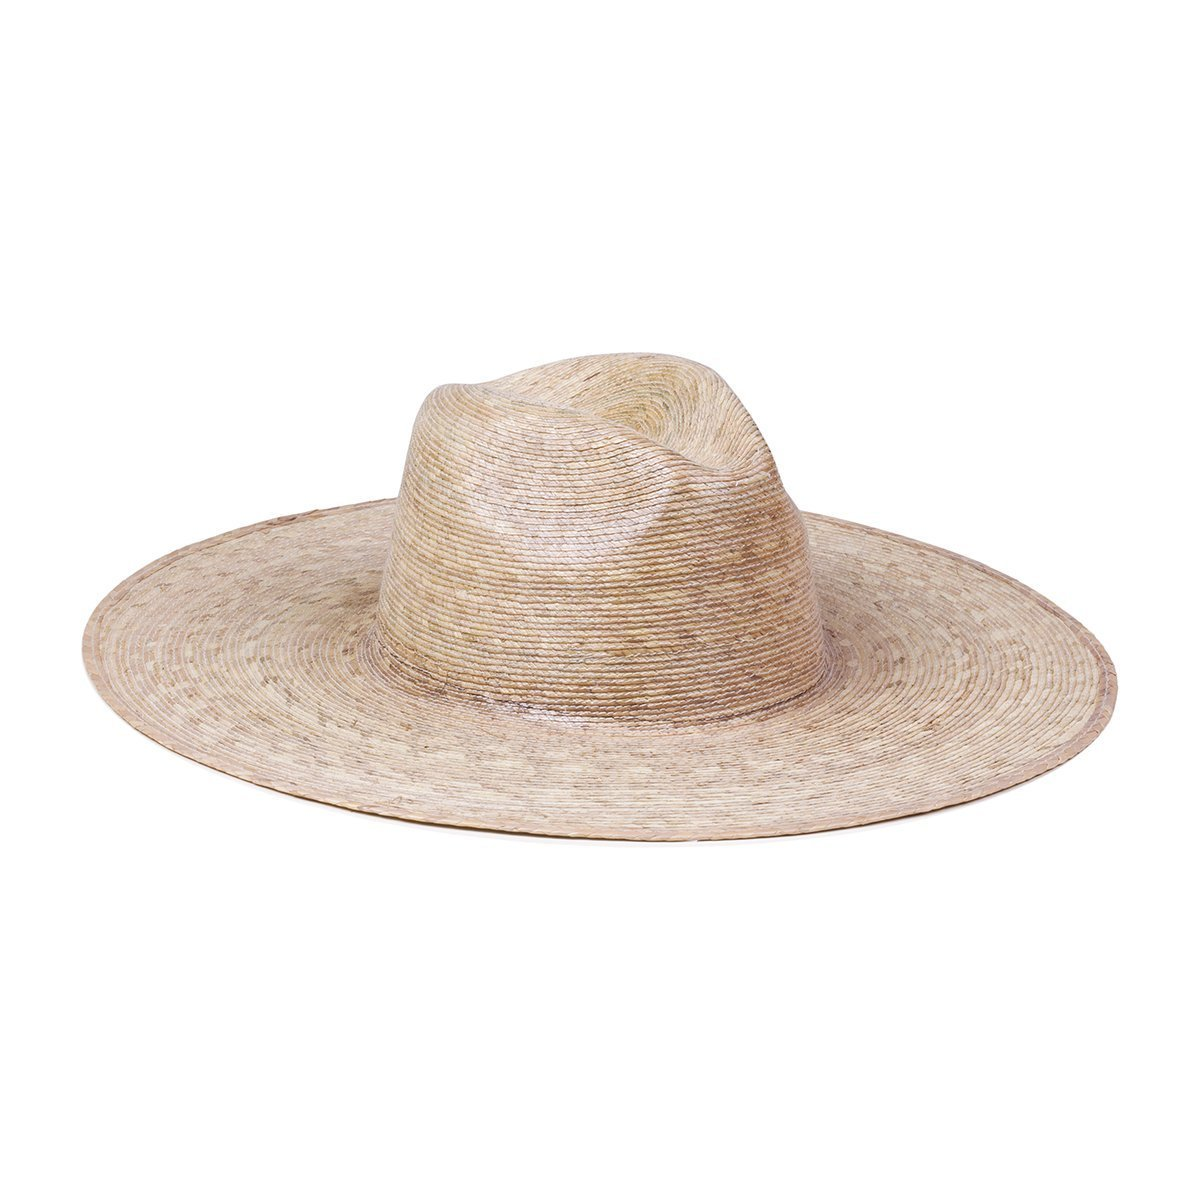 Load image into Gallery viewer, Palma Wide Fedora Womens Hat by Lack of Color